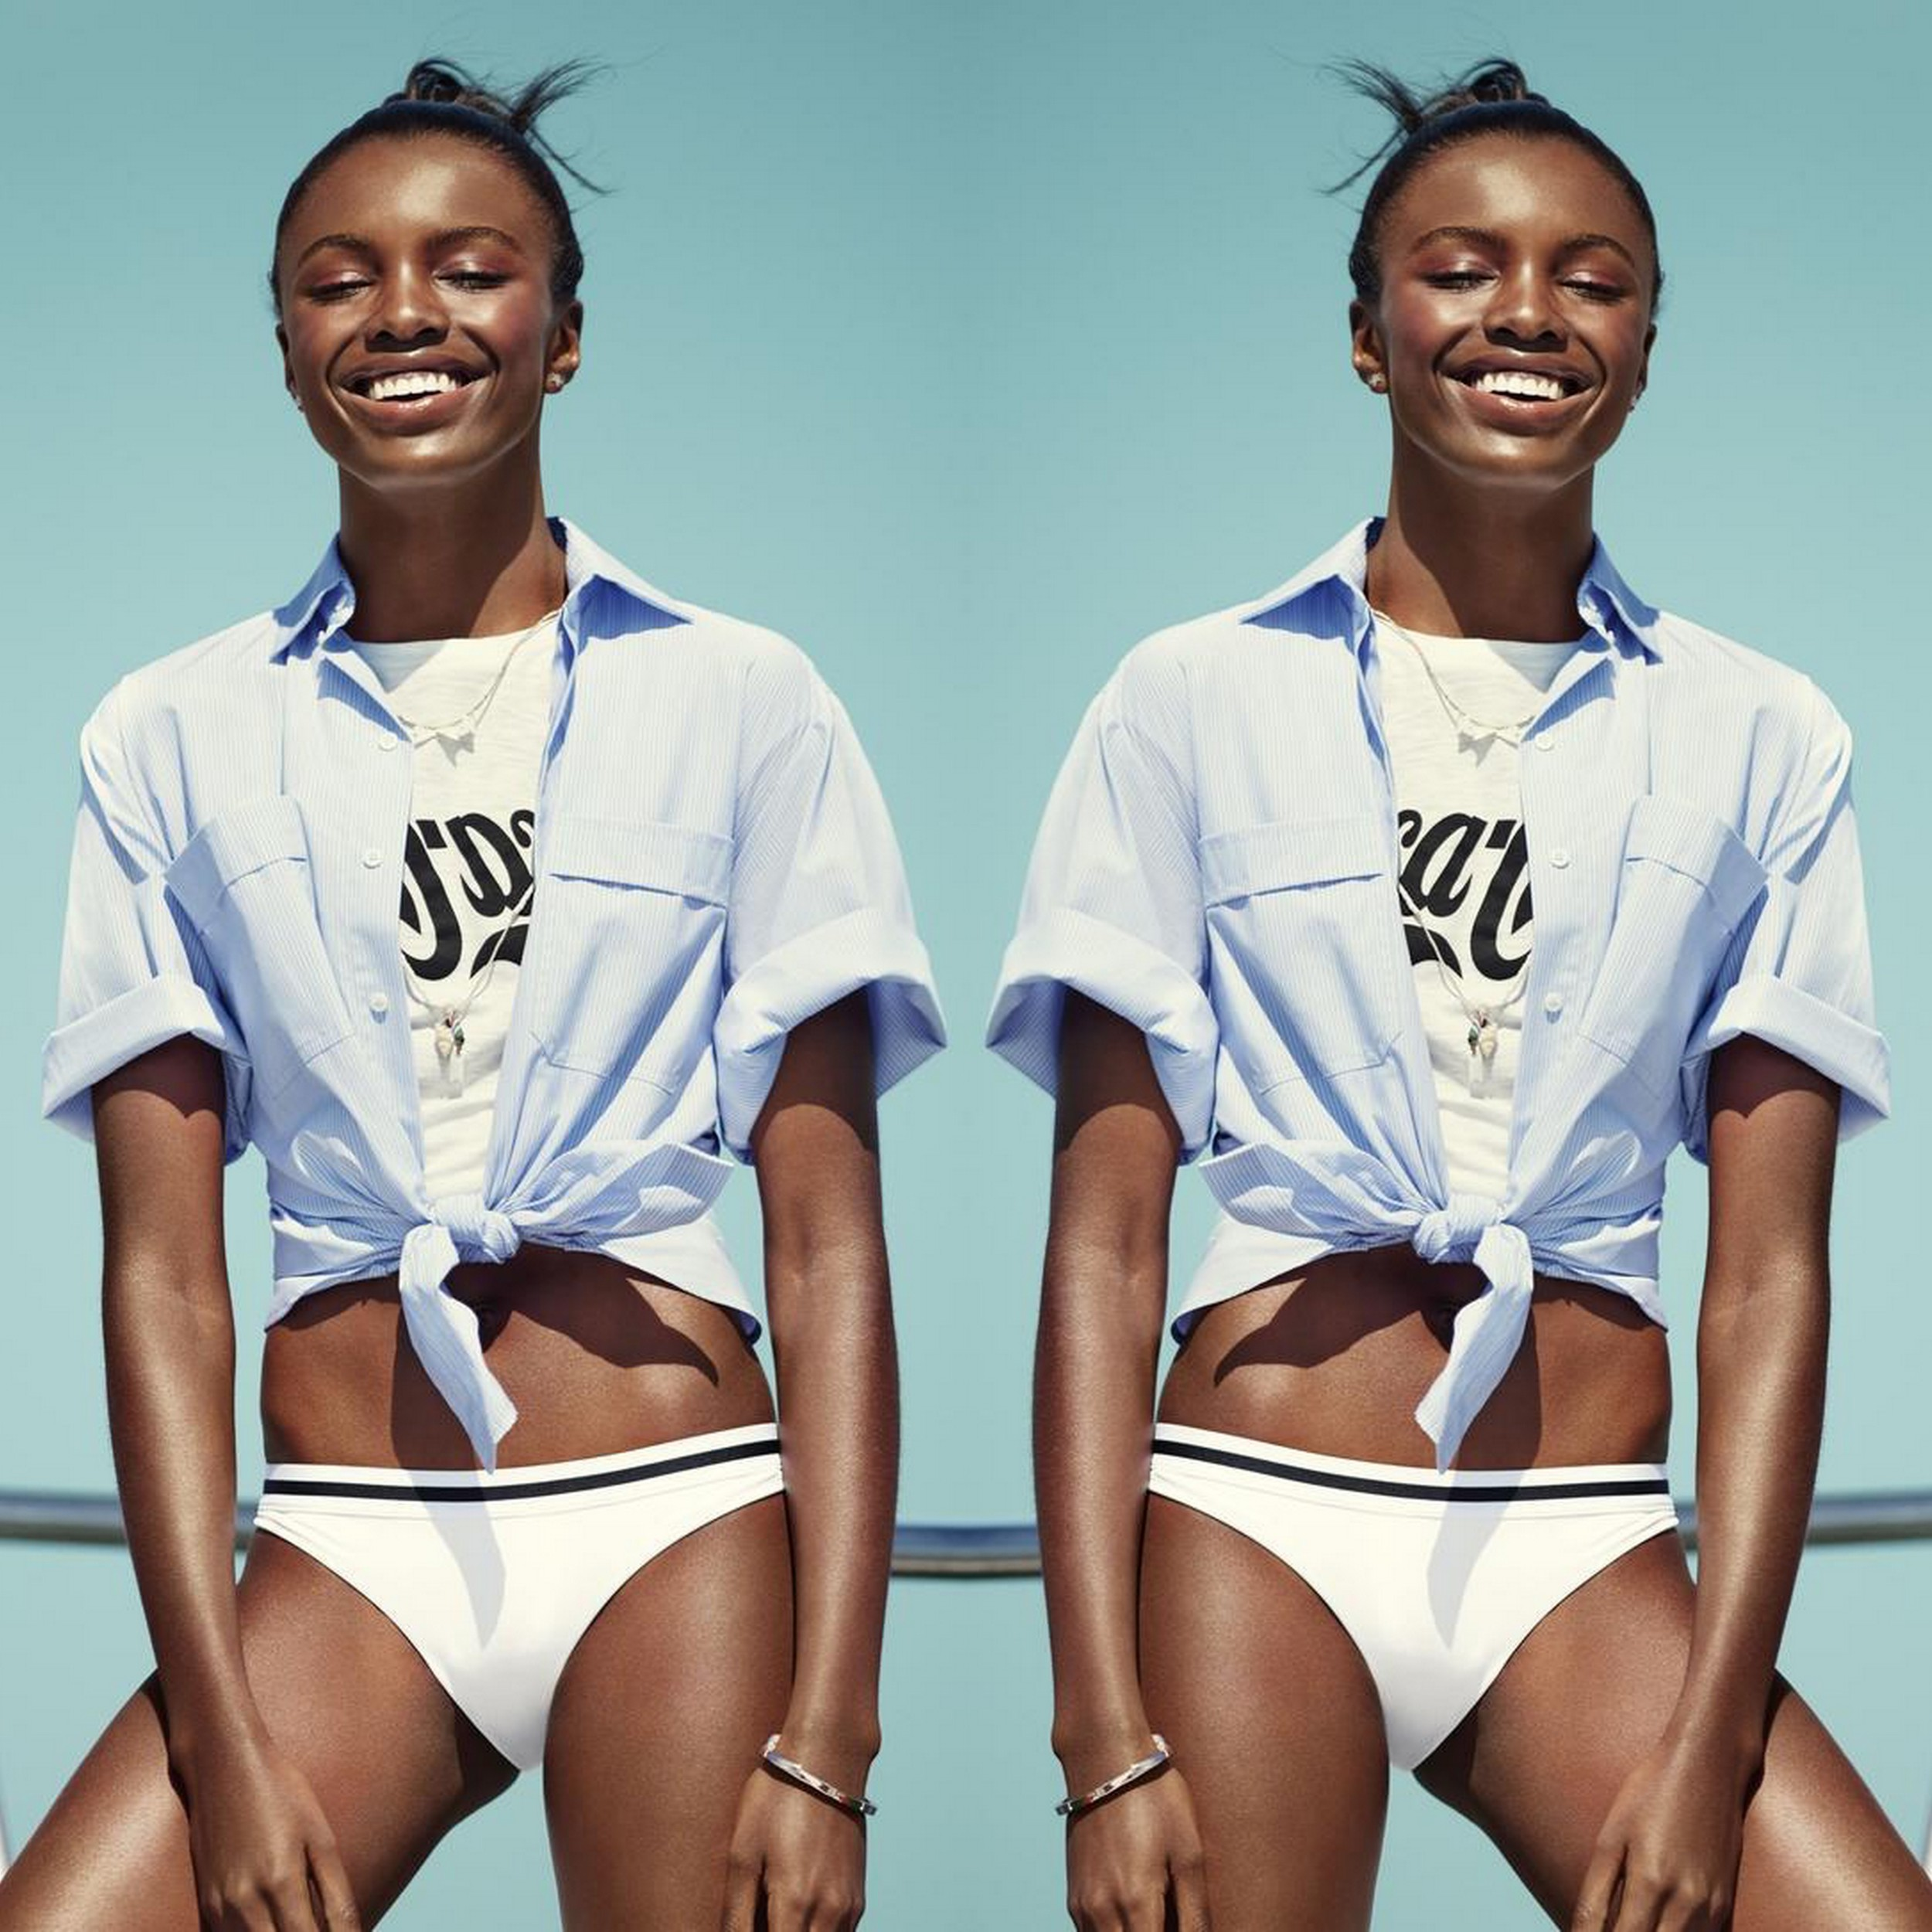 Original image of Leomie Anderson shot by Tom Schirmacher, styled by James Worthington Demolet, make-up by Samantha Trinh for  Seventeen Magazine  June 2015